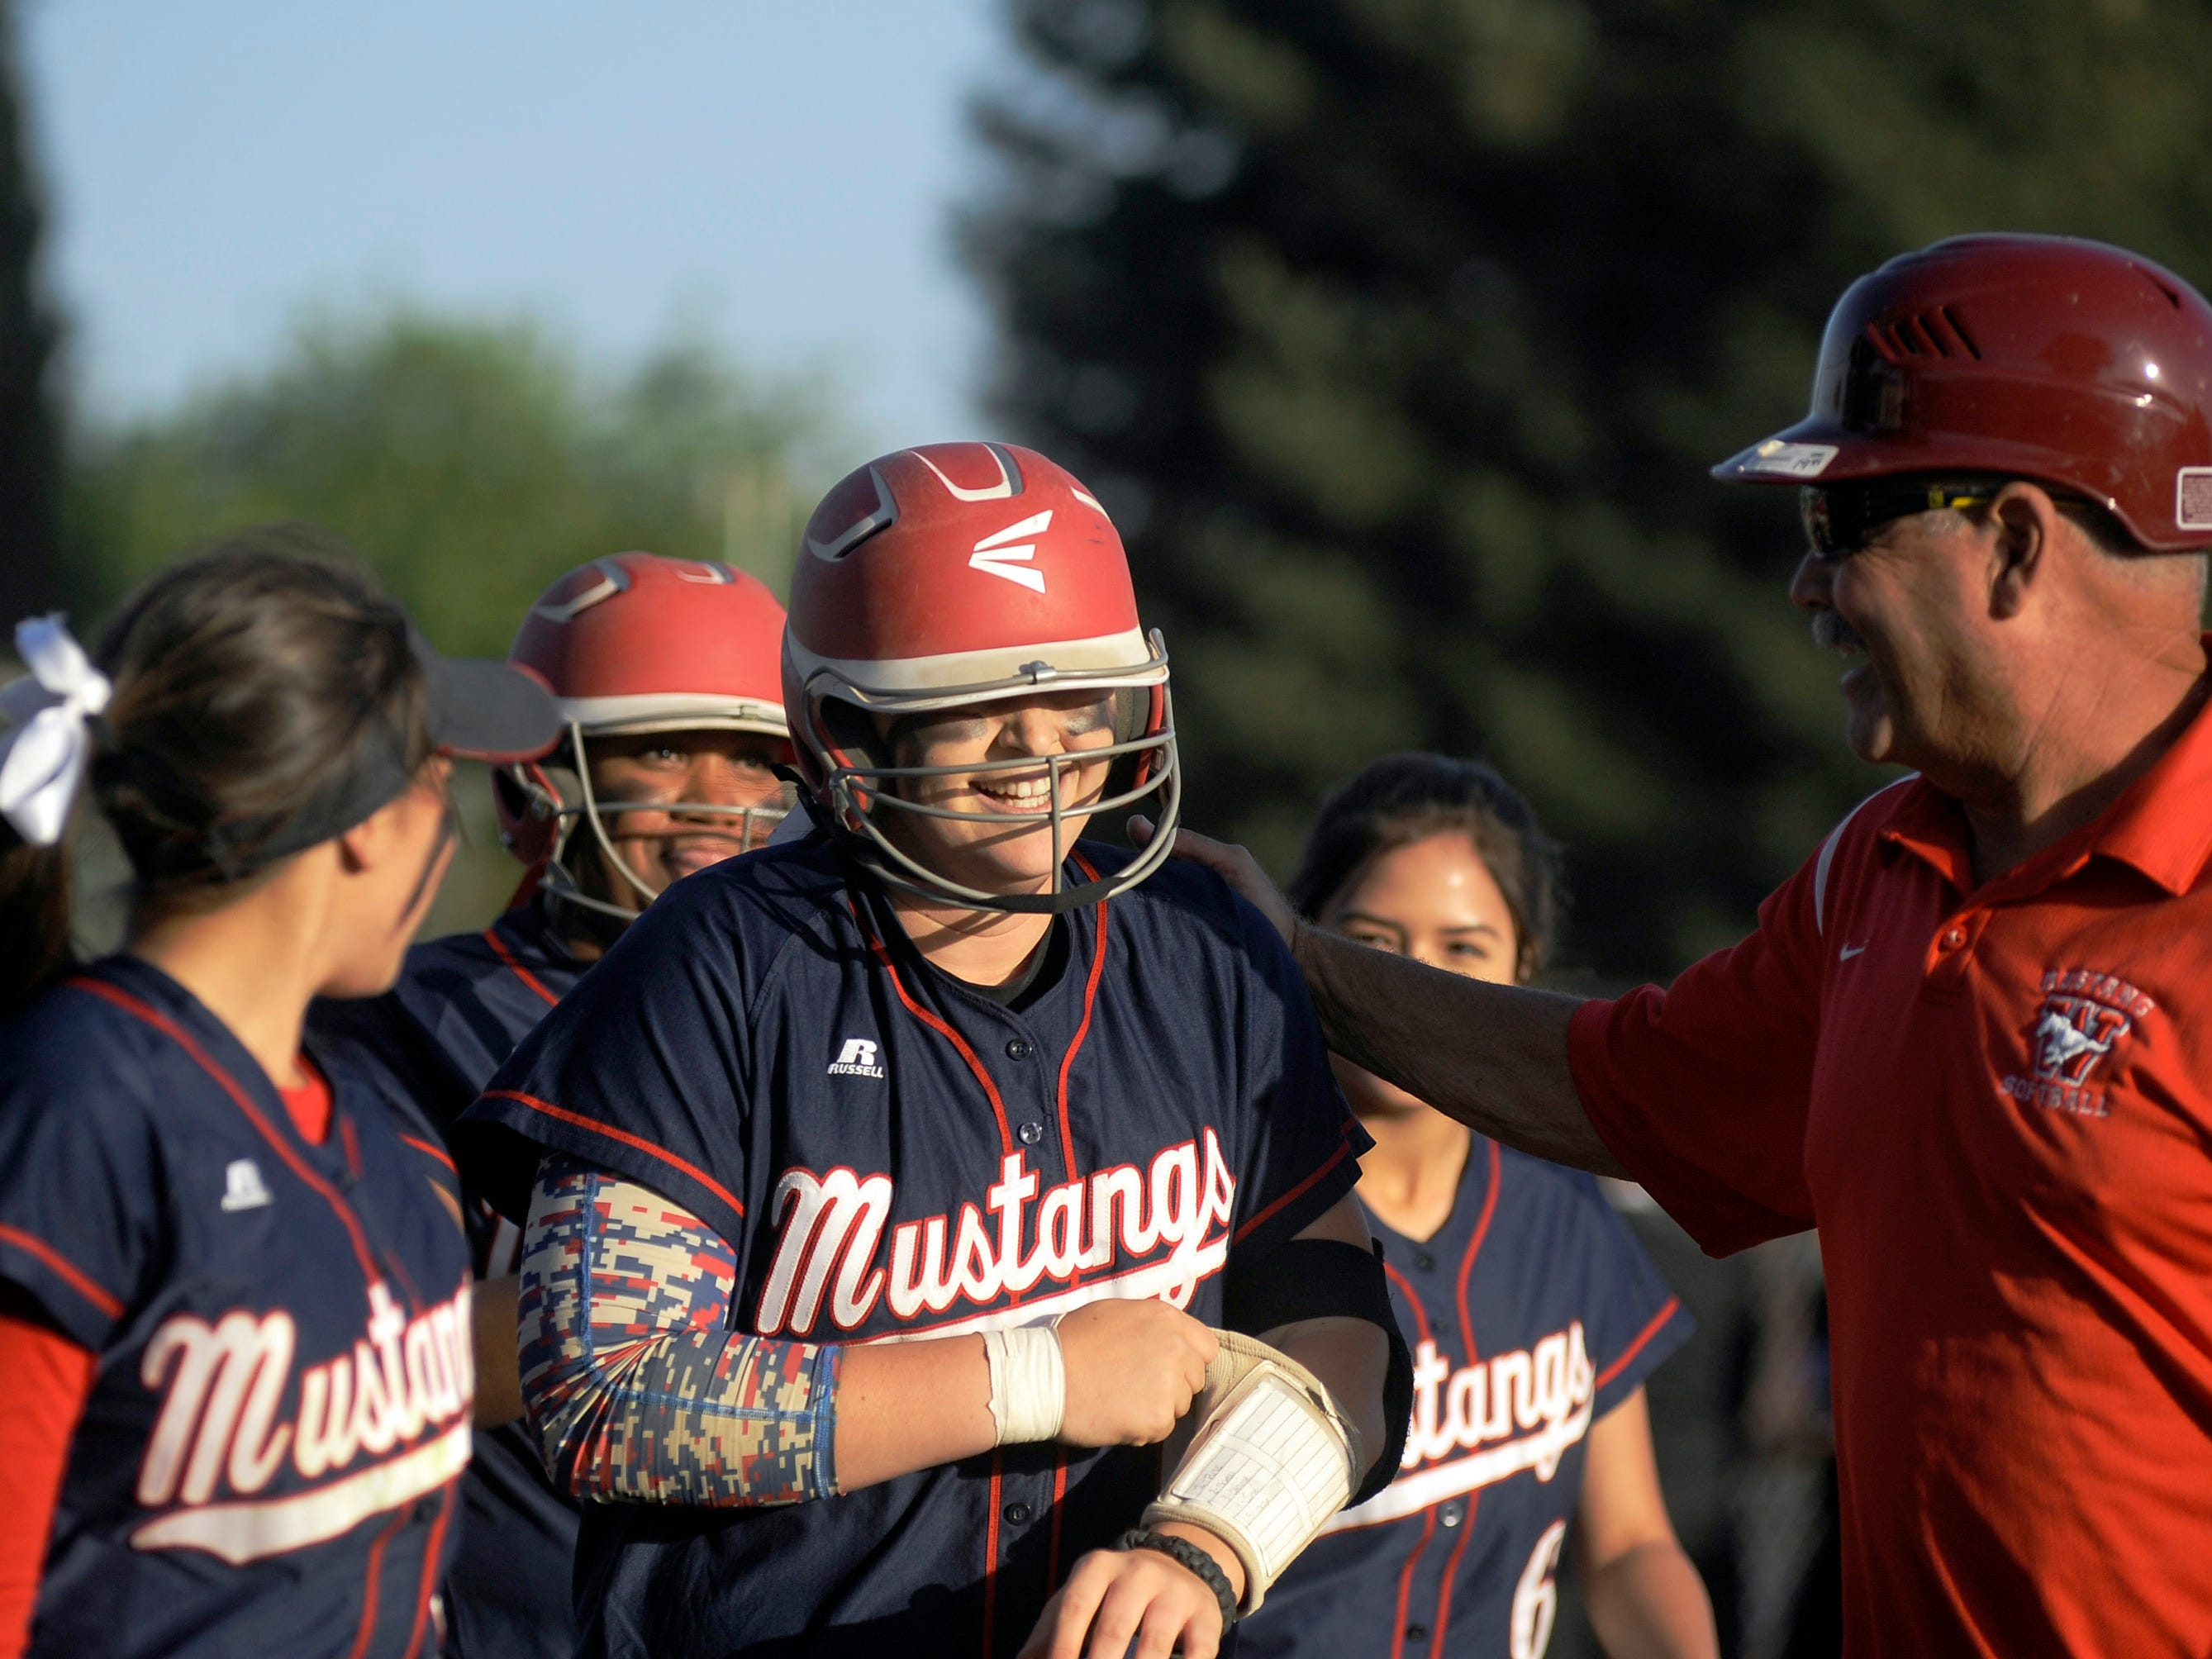 Tulare Western's Kelcey Carrasco, center, is greeted at home plate after her walk-off home run in Tuesday's game against Mission Oak.